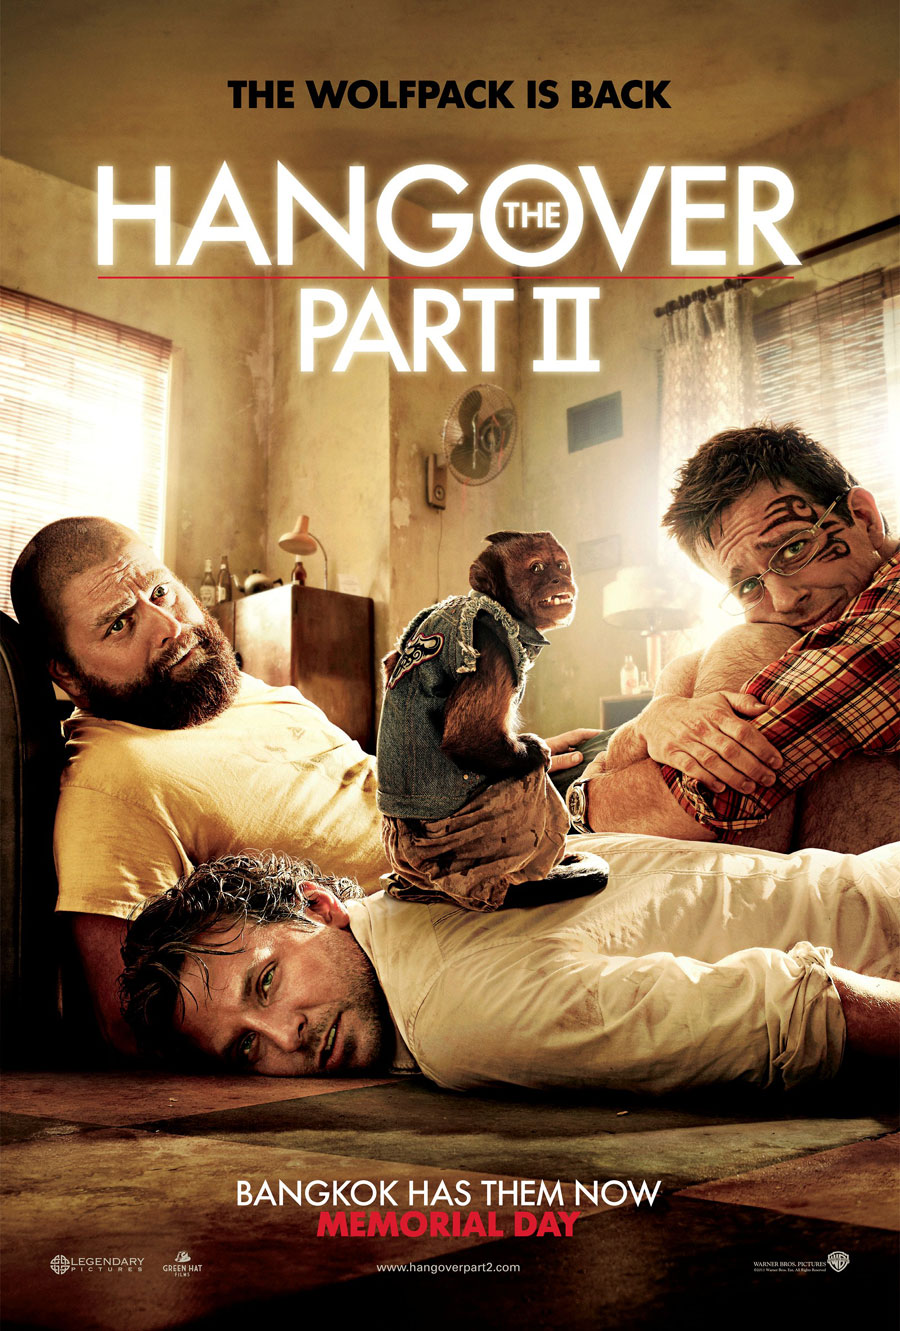 the hangover review On rotten tomatoes the film has an approval rating of 79% based on 228 reviews with an average rating of 68/10 the site's critical consensus reads,  with a clever script and hilarious interplay among the cast, the hangover nails just the right tone of raunchy humor and the non-stop laughs overshadow any flaw.